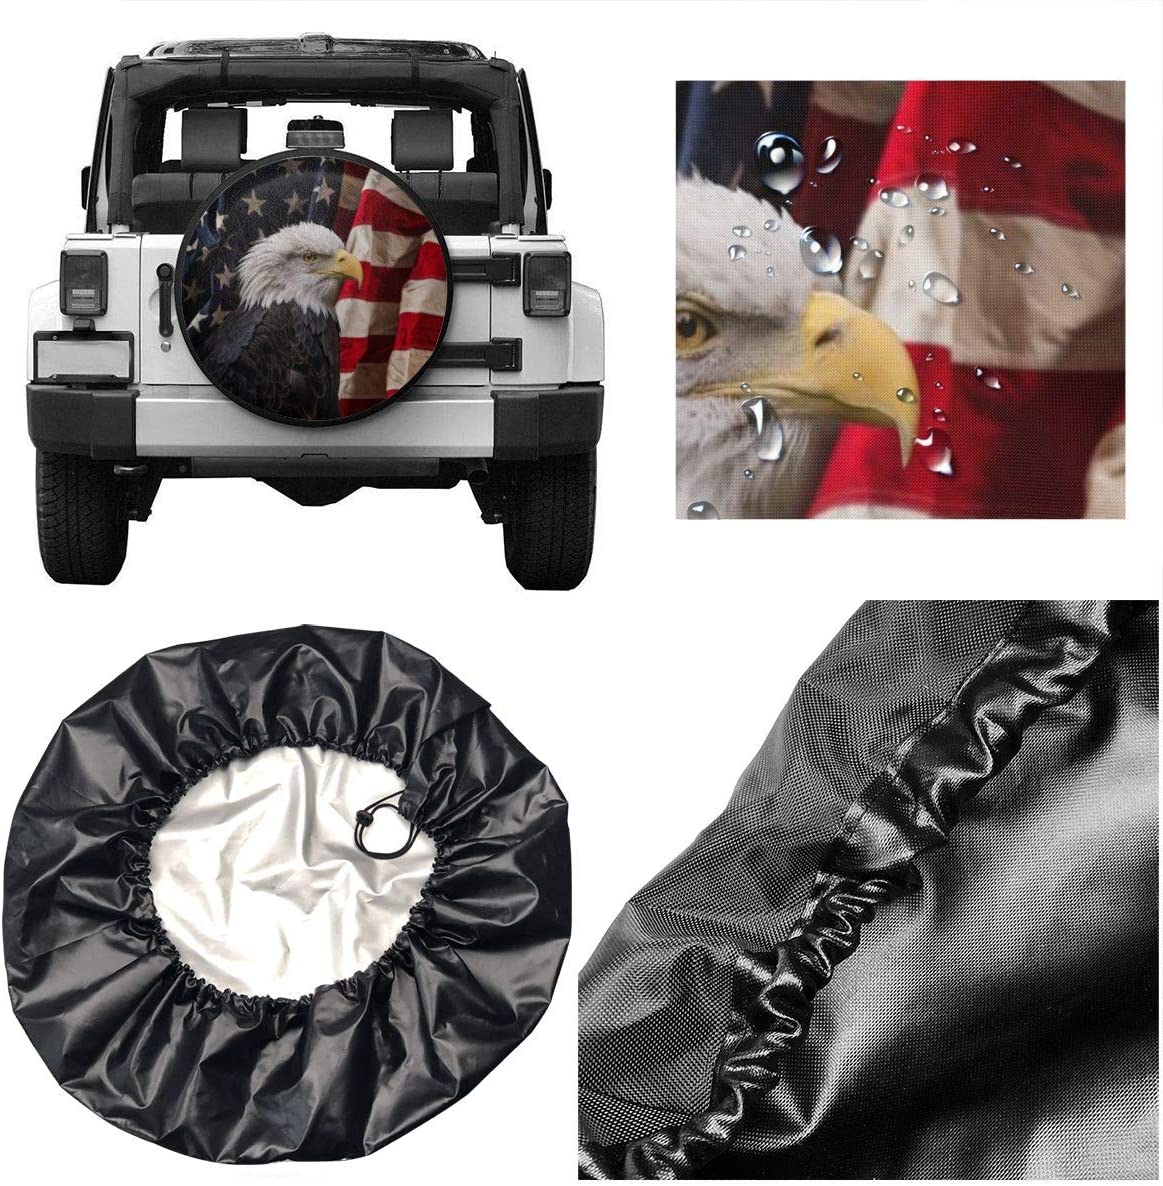 LOCOLO 20 Pieces American Flag Valve Stem Cap Trucks Bicycles Motorcycles Bikes Anti-Theft Design Stem Caps for Cars Tire Valve Stem Caps Metal with Rubber Ring Tire Wheel Rim Dust Cover